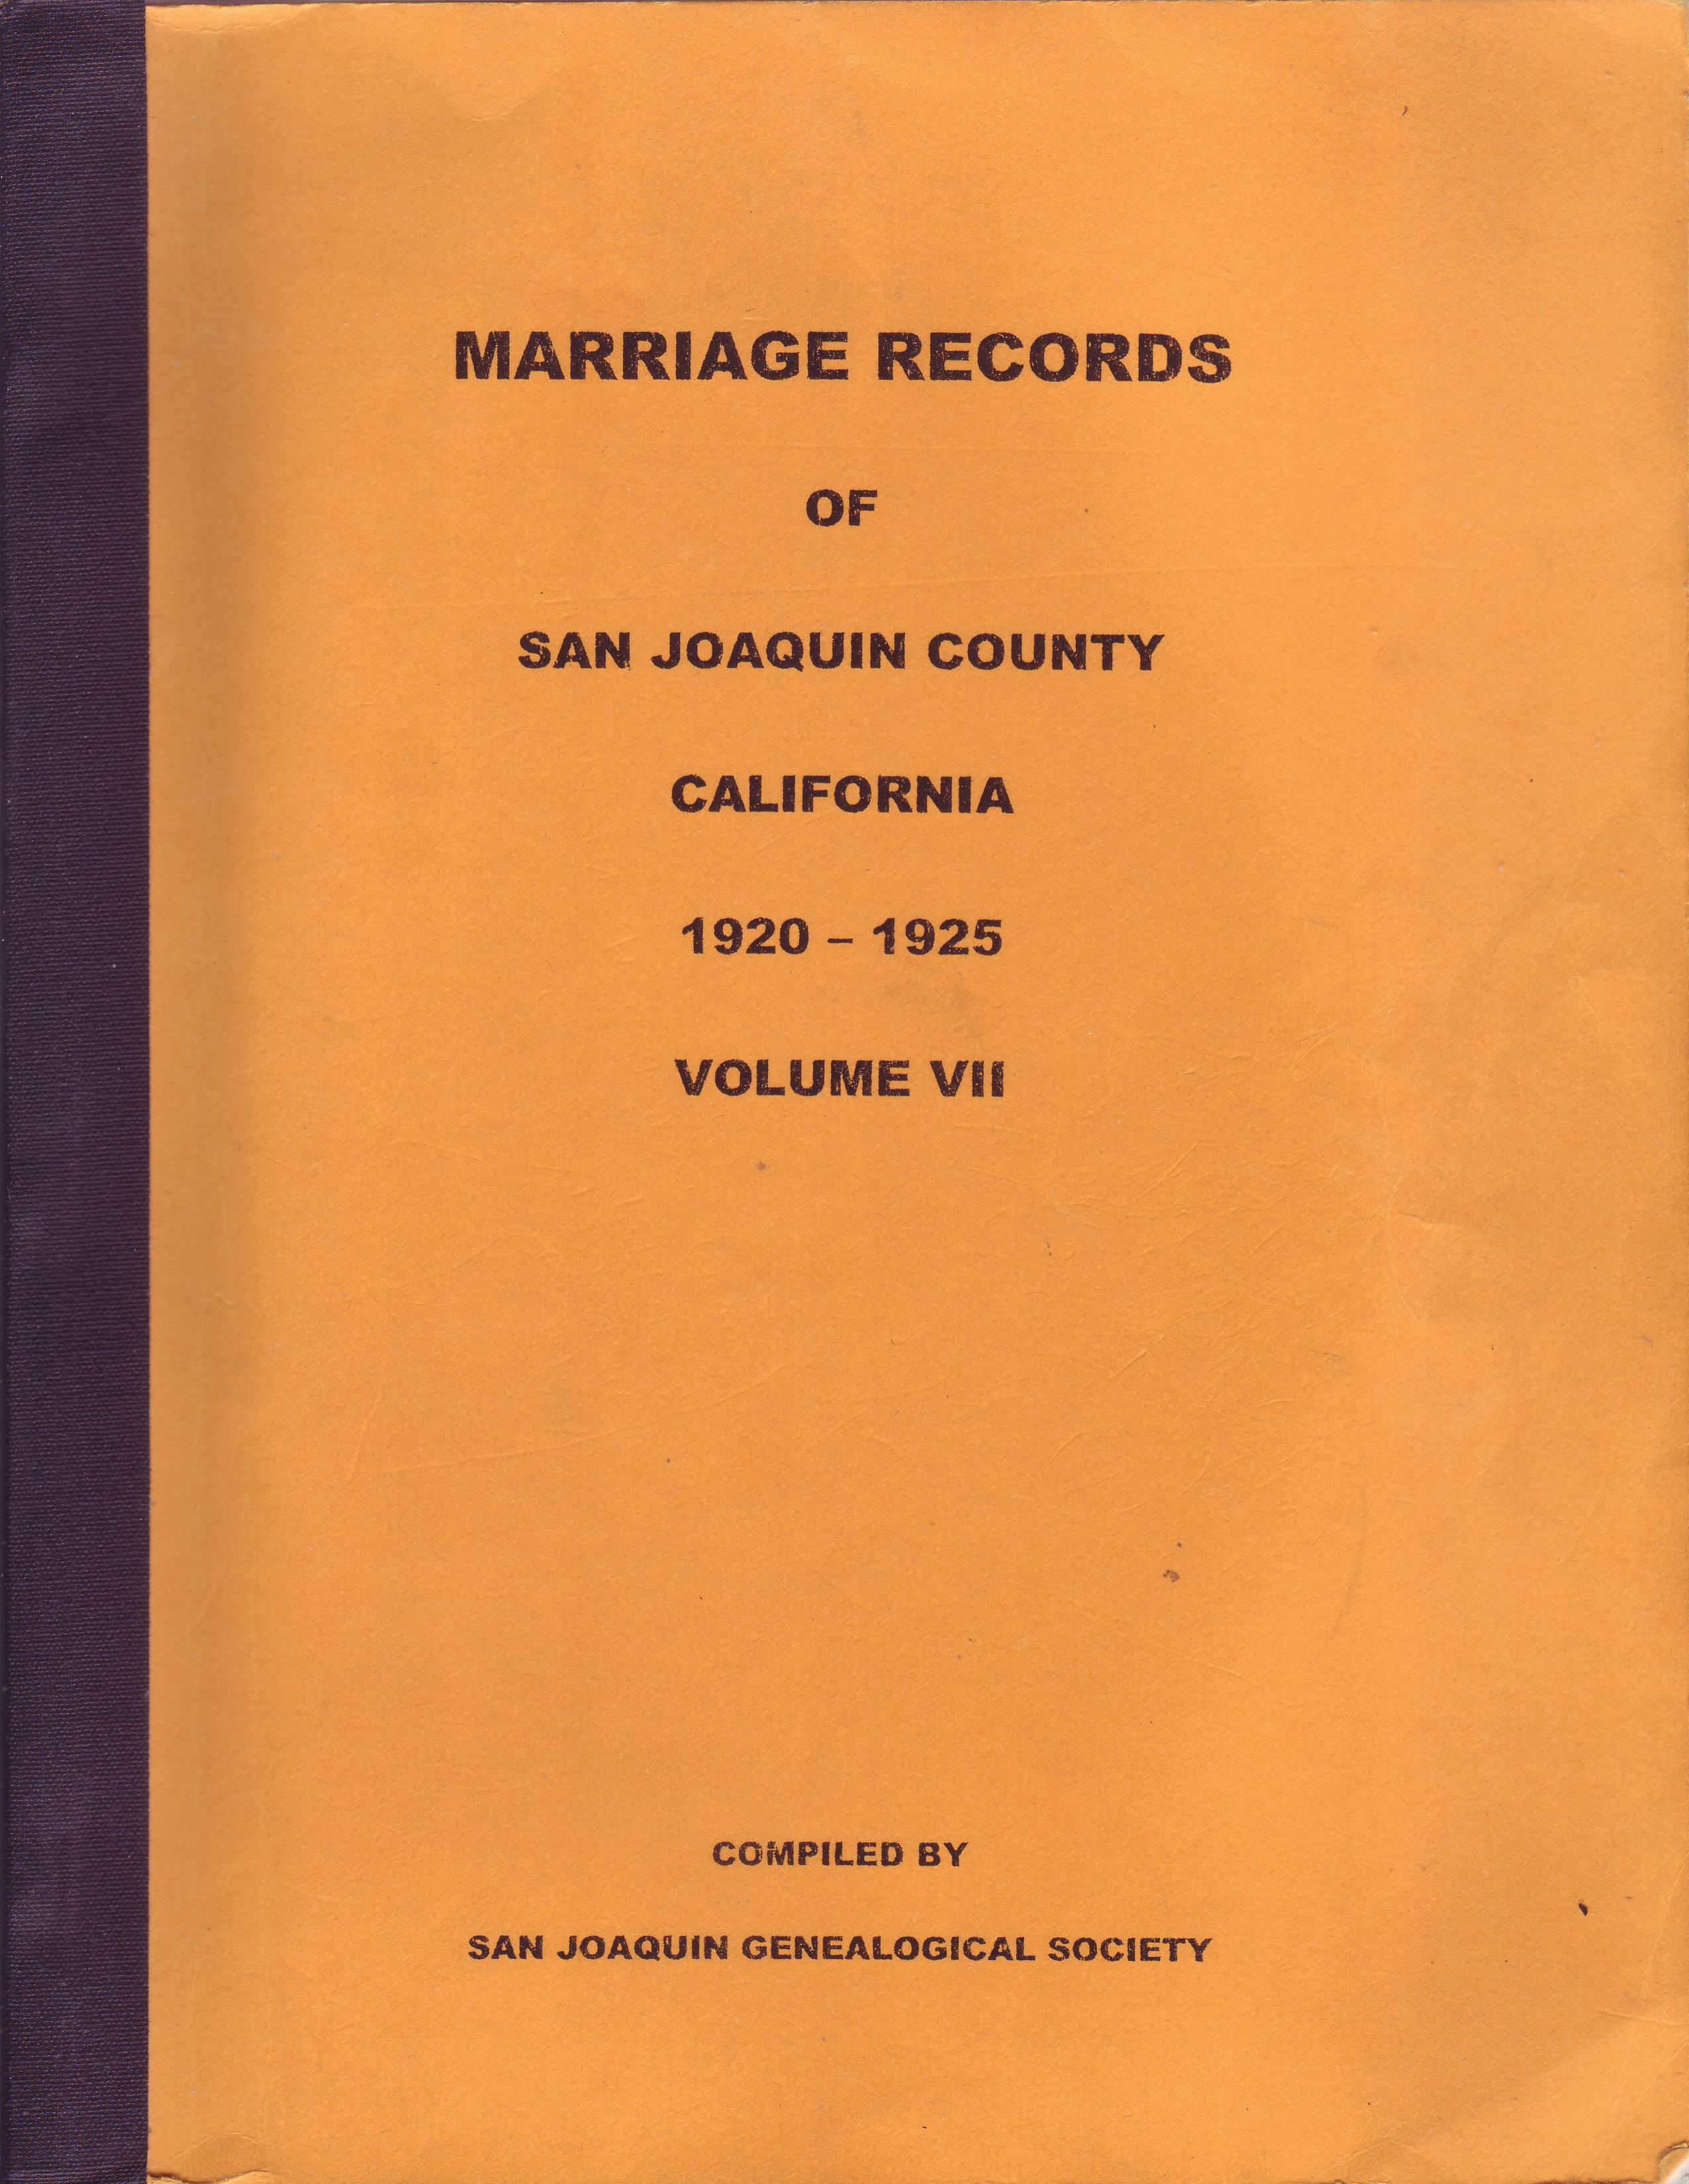 Marriage Records of San Joaquin County, California, 1920–1925, Volume VII